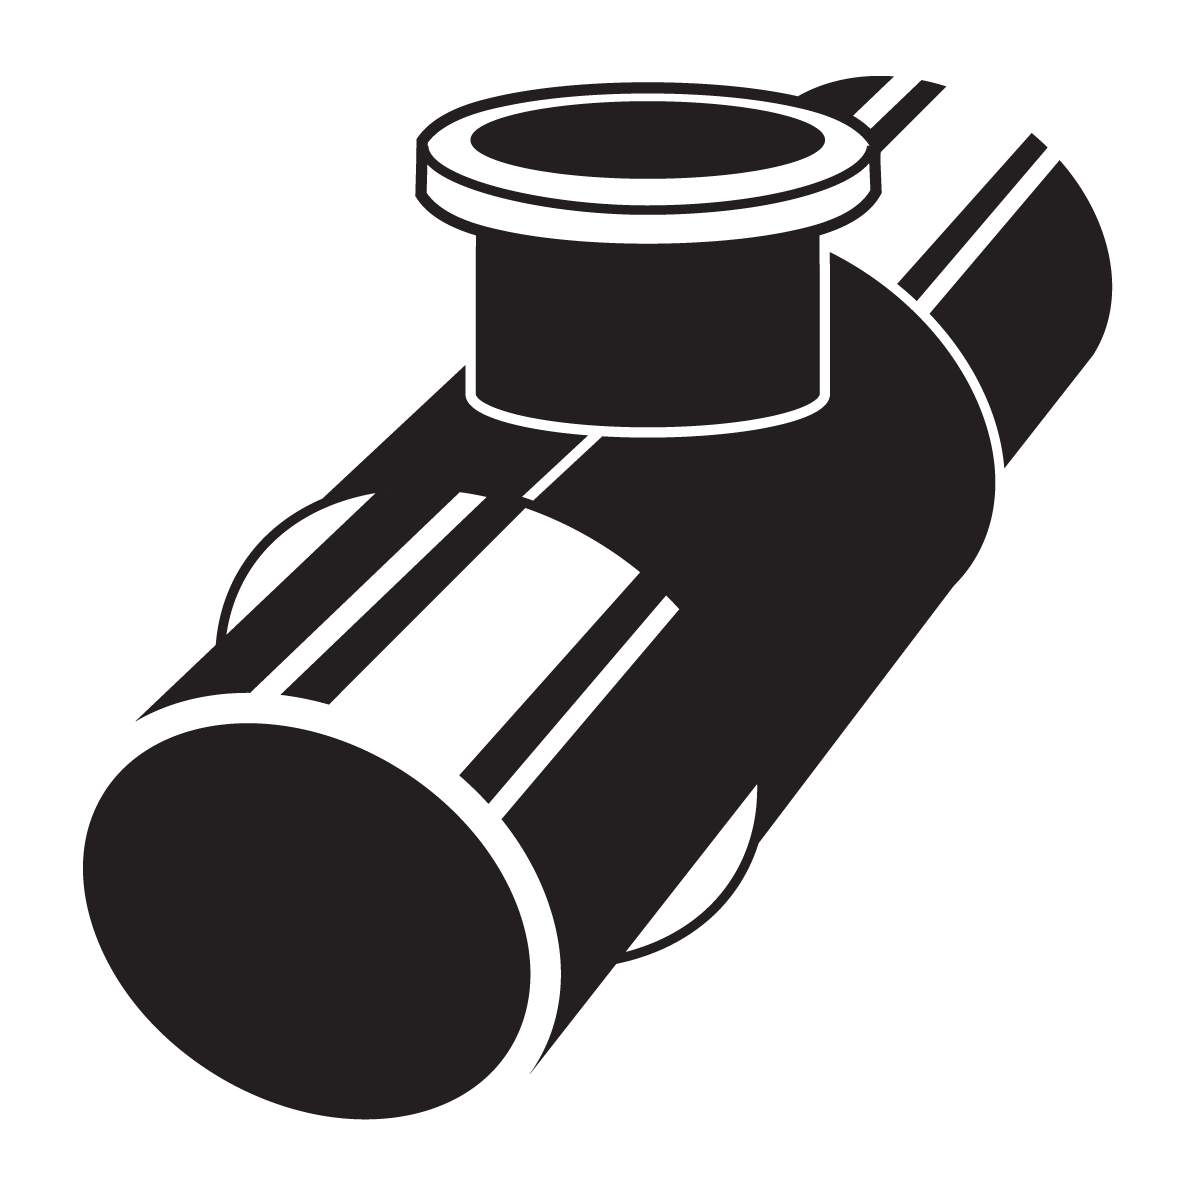 Service work insertions icon. Pipe clipart valve